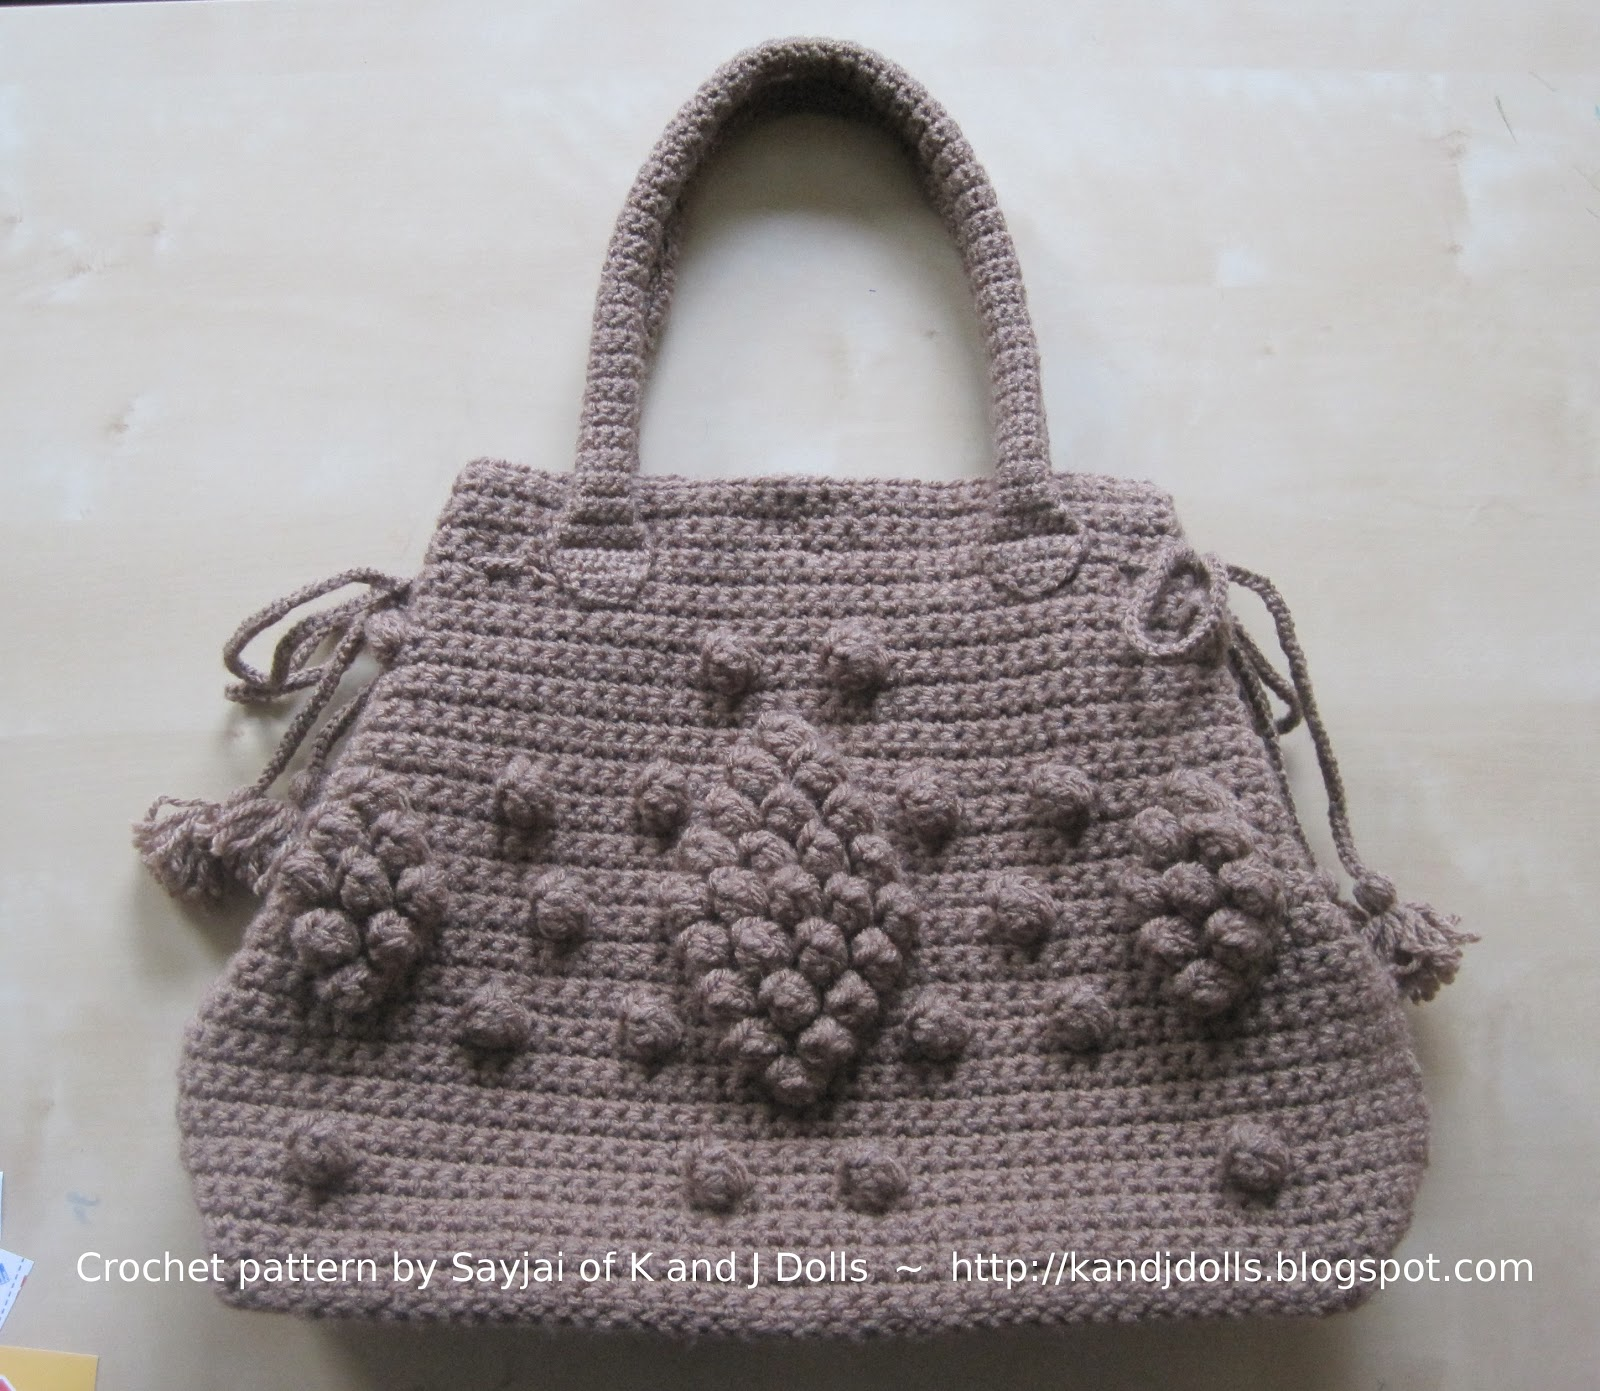 Crochet Handbag Tutorial : Taupe Bag crochet pattern - Sayjai Amigurumi Crochet Patterns ~ K and ...